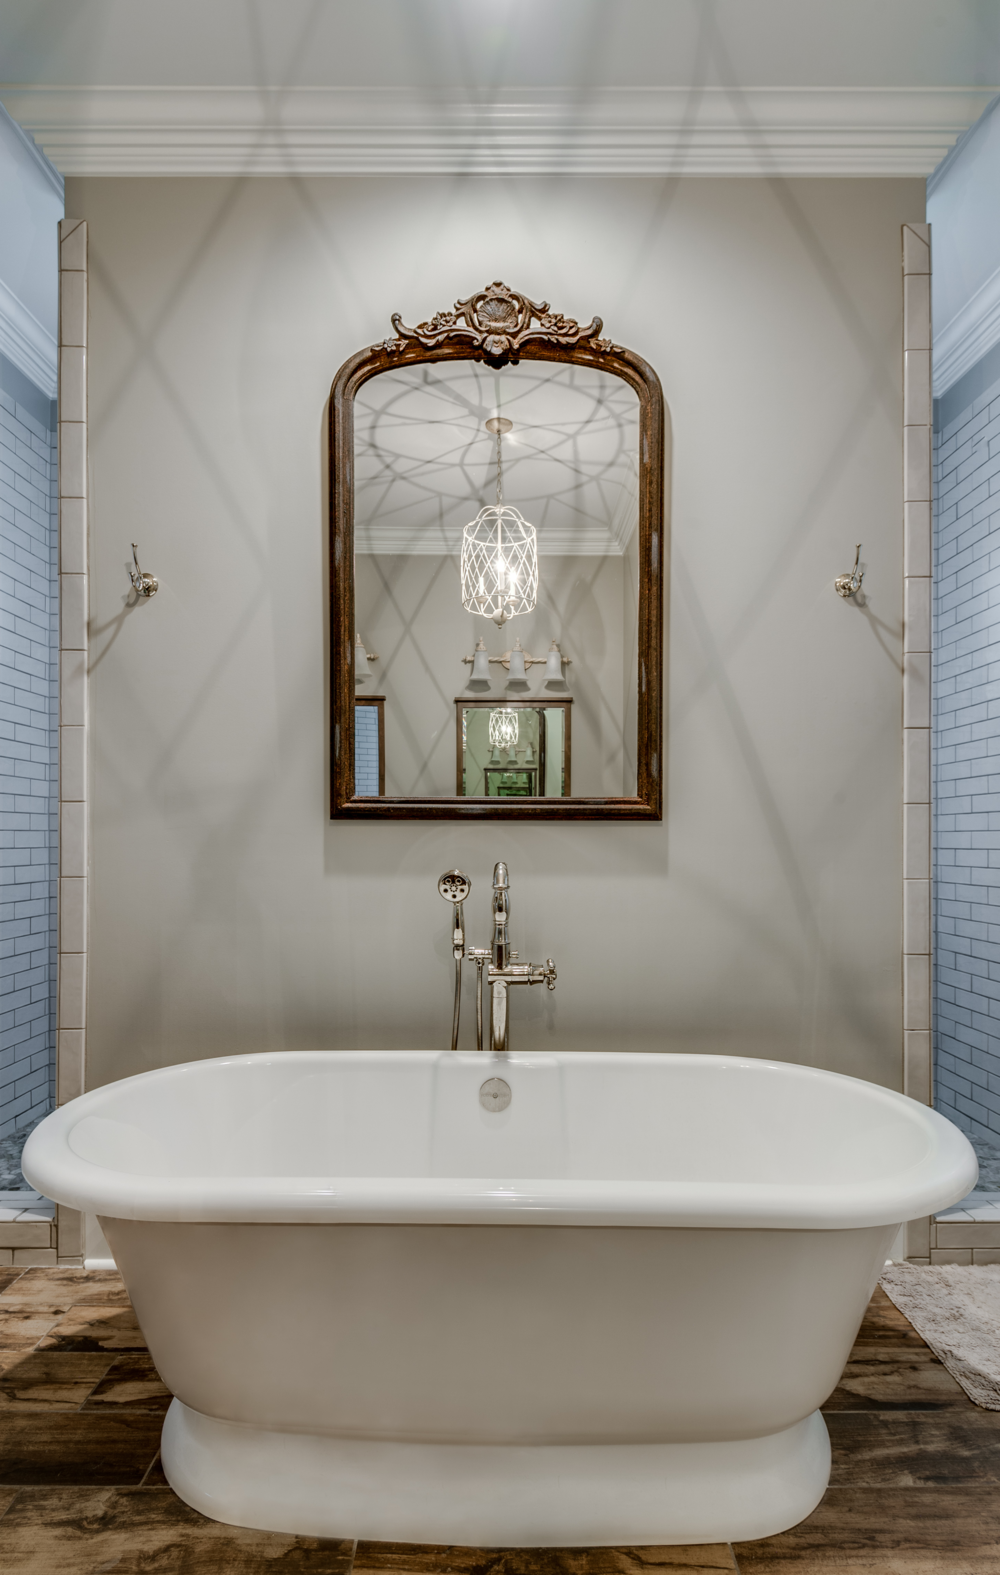 KHB Interiors master bathroom interior decorator new orleans old  metairie interior designer lakeview new orleans .png